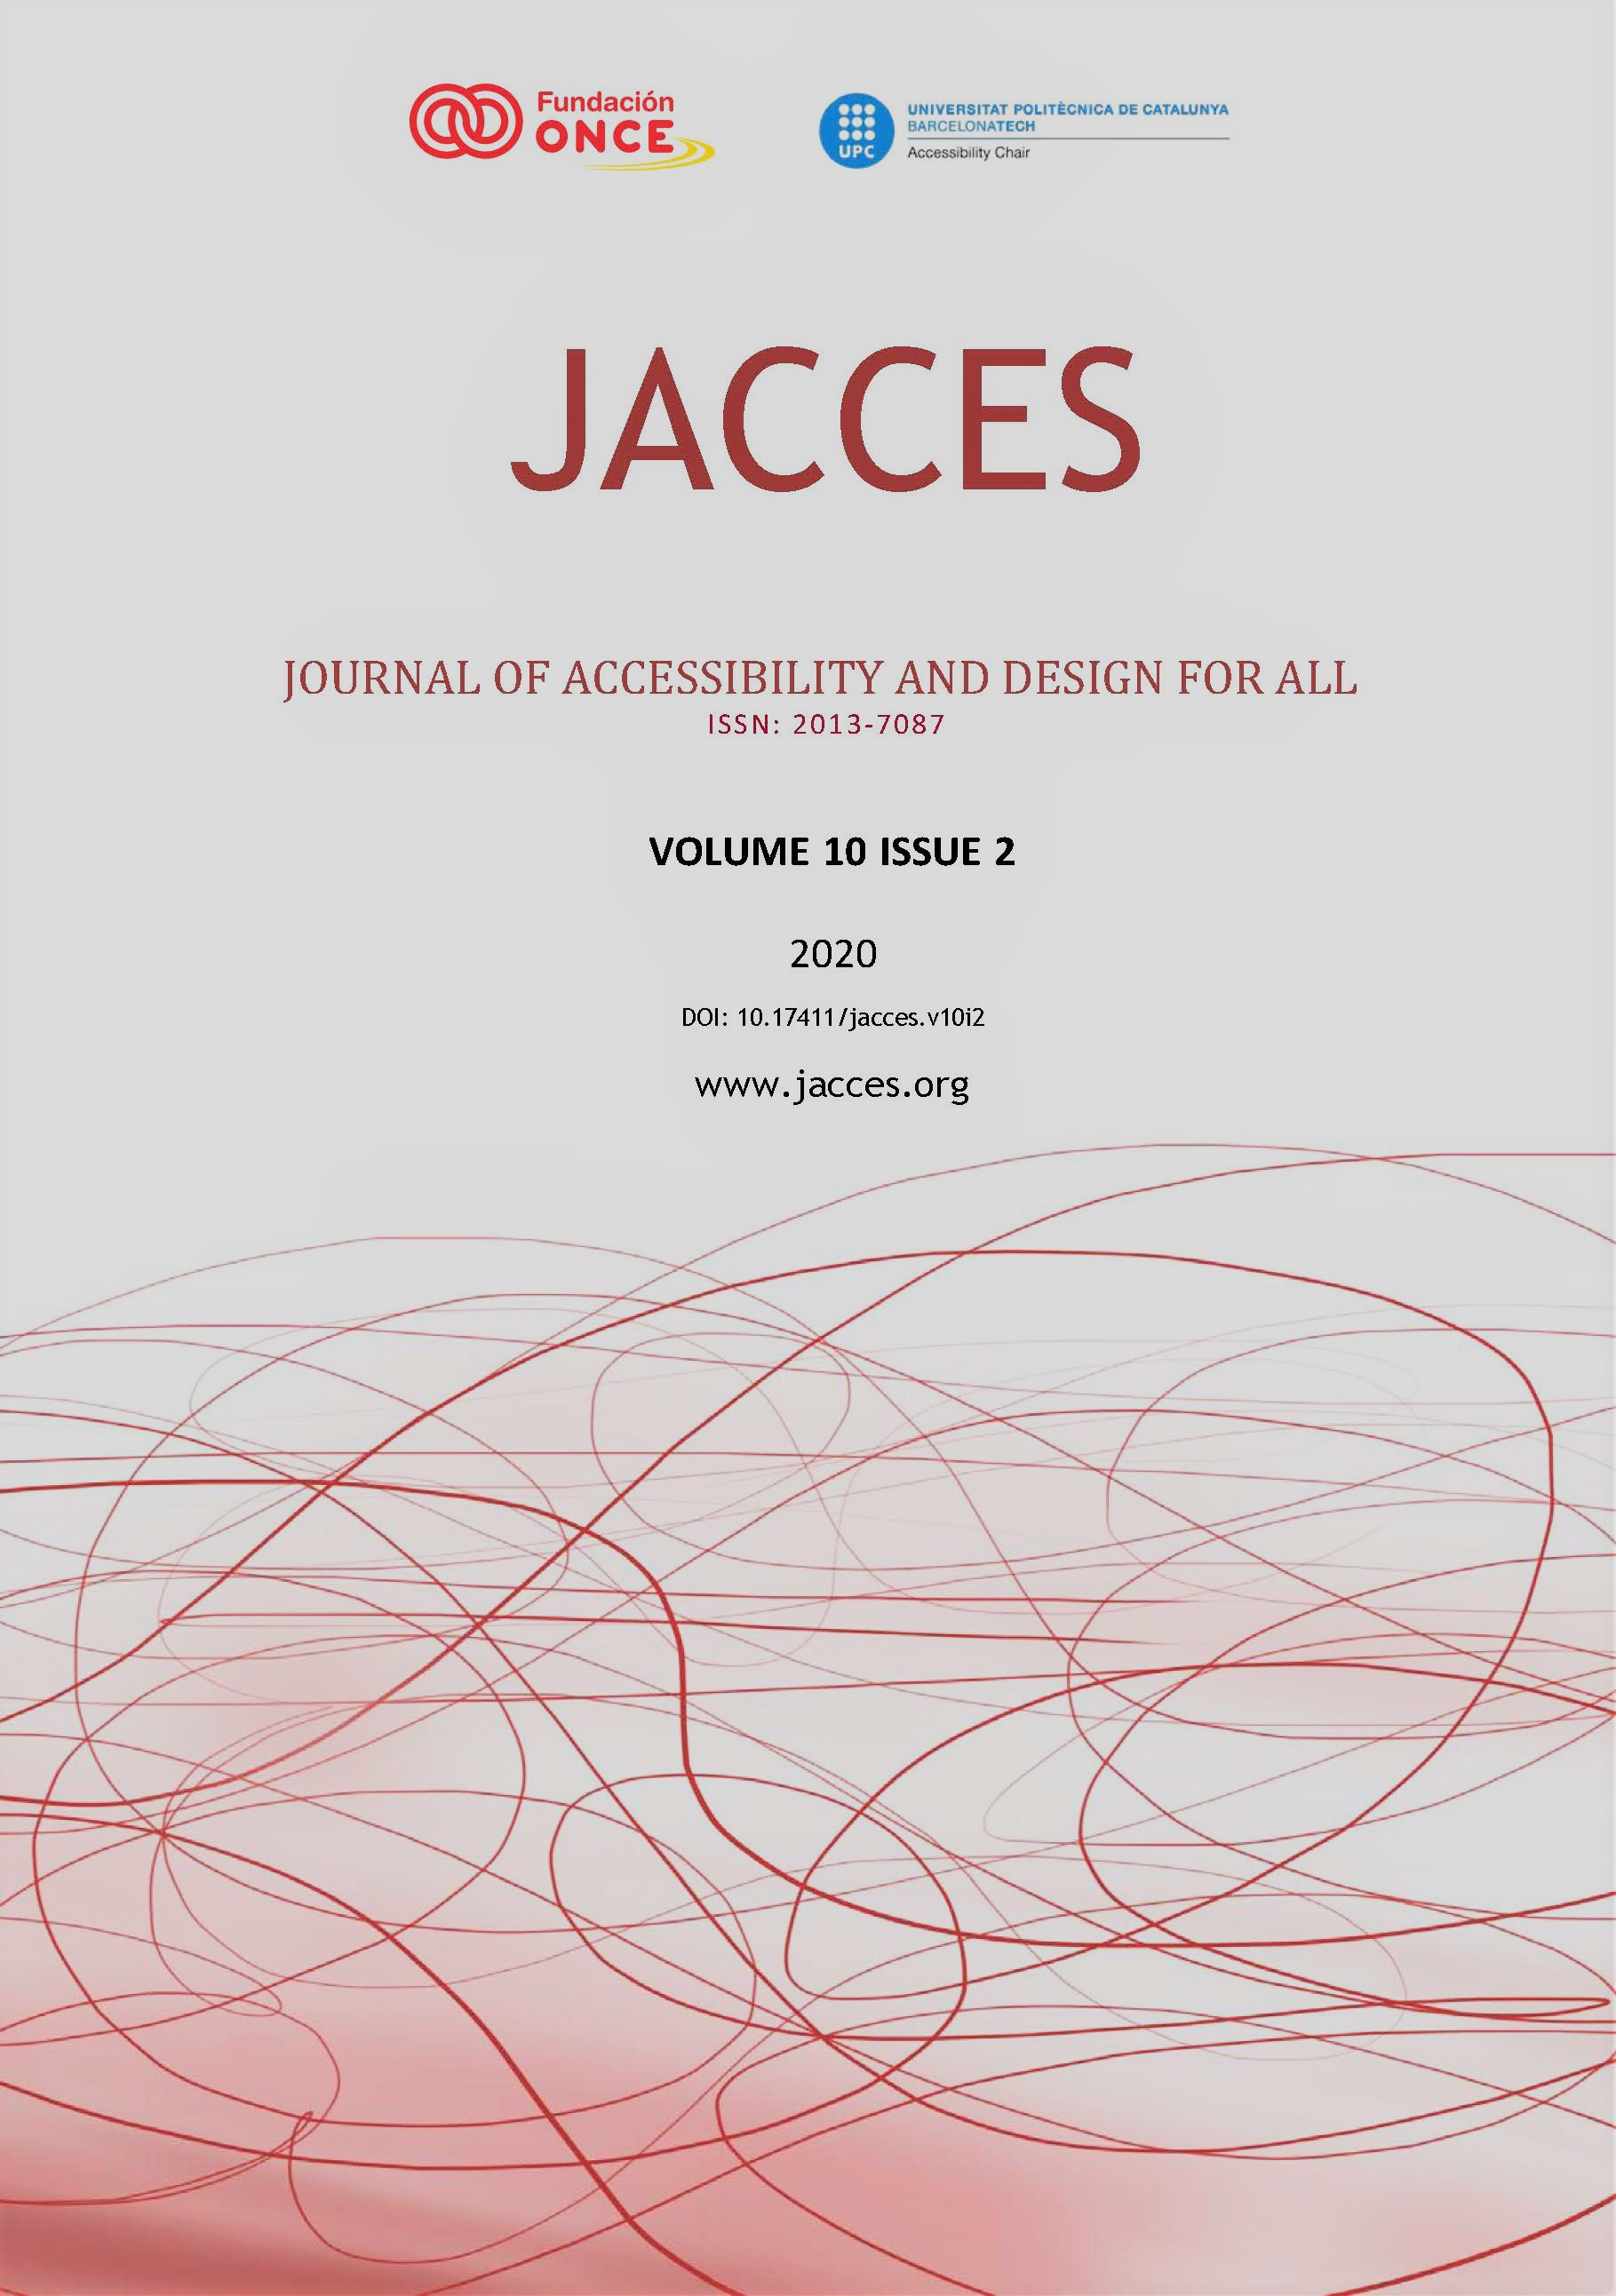 View Vol. 10 No. 2 (2020): Journal of Accessibility and Design for All